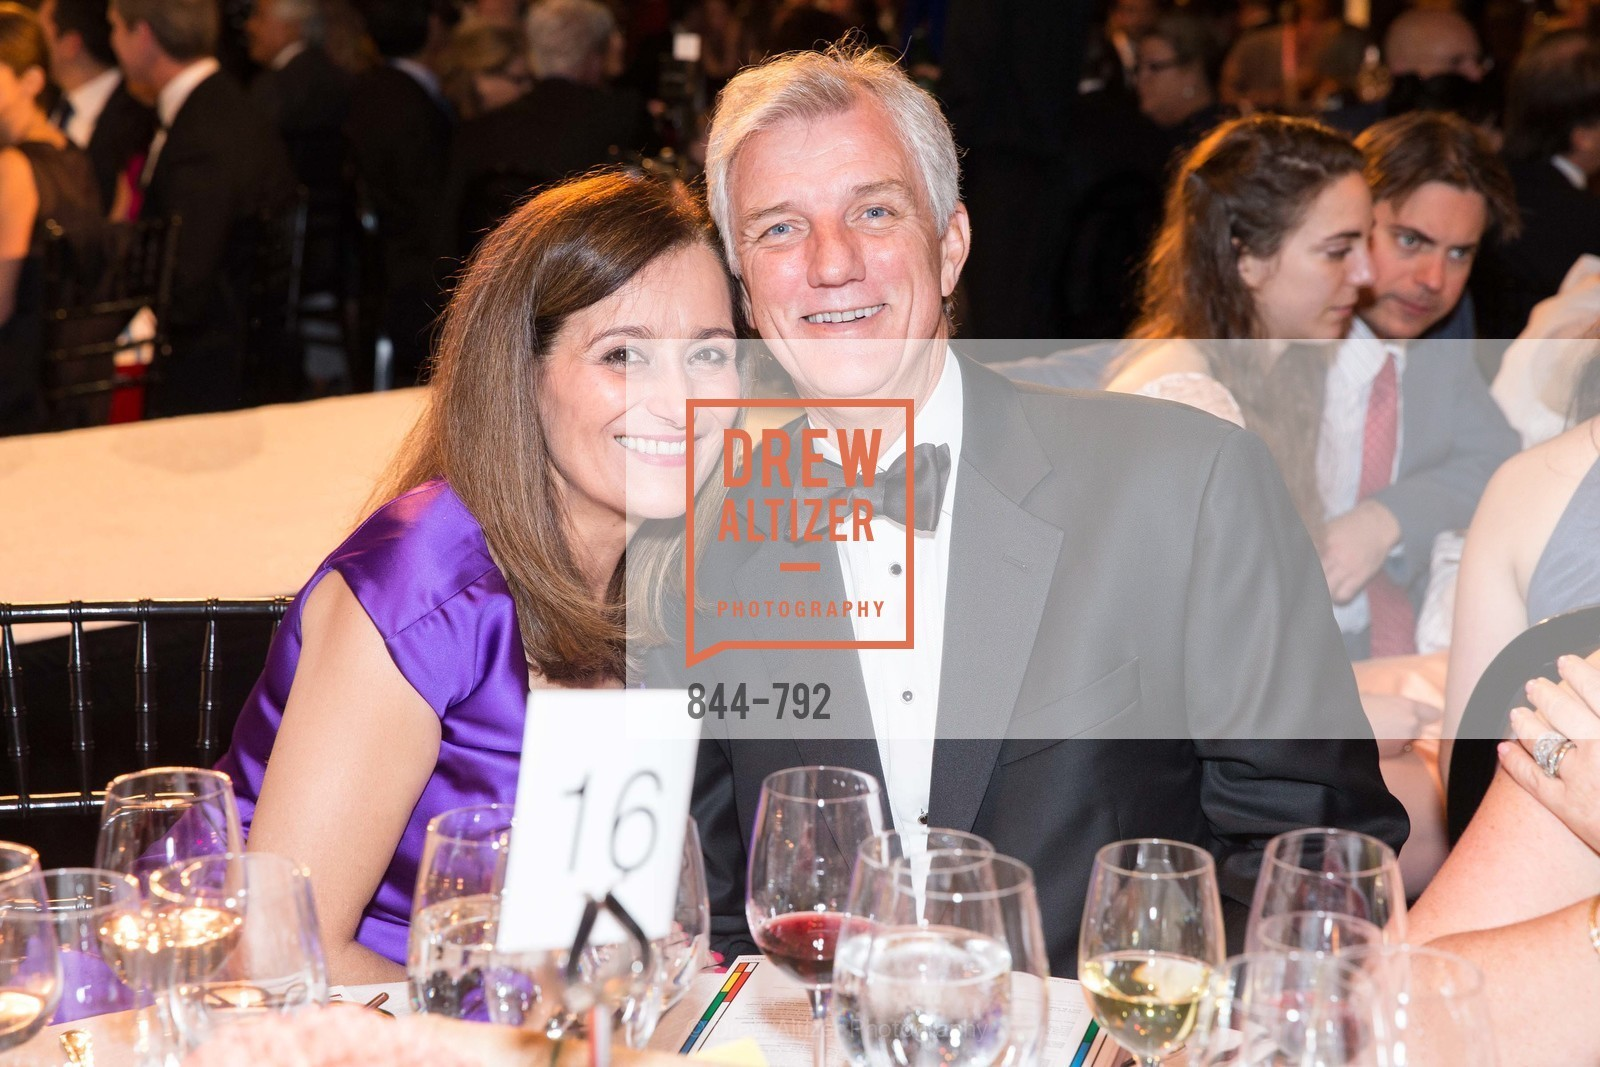 Geisha Williams, Jay Williams, MEALS ON WHEELS OF SAN FRANCISCO'S 28th Annual Star Chefs and Vintners Gala, US, April 19th, 2015,Drew Altizer, Drew Altizer Photography, full-service agency, private events, San Francisco photographer, photographer california